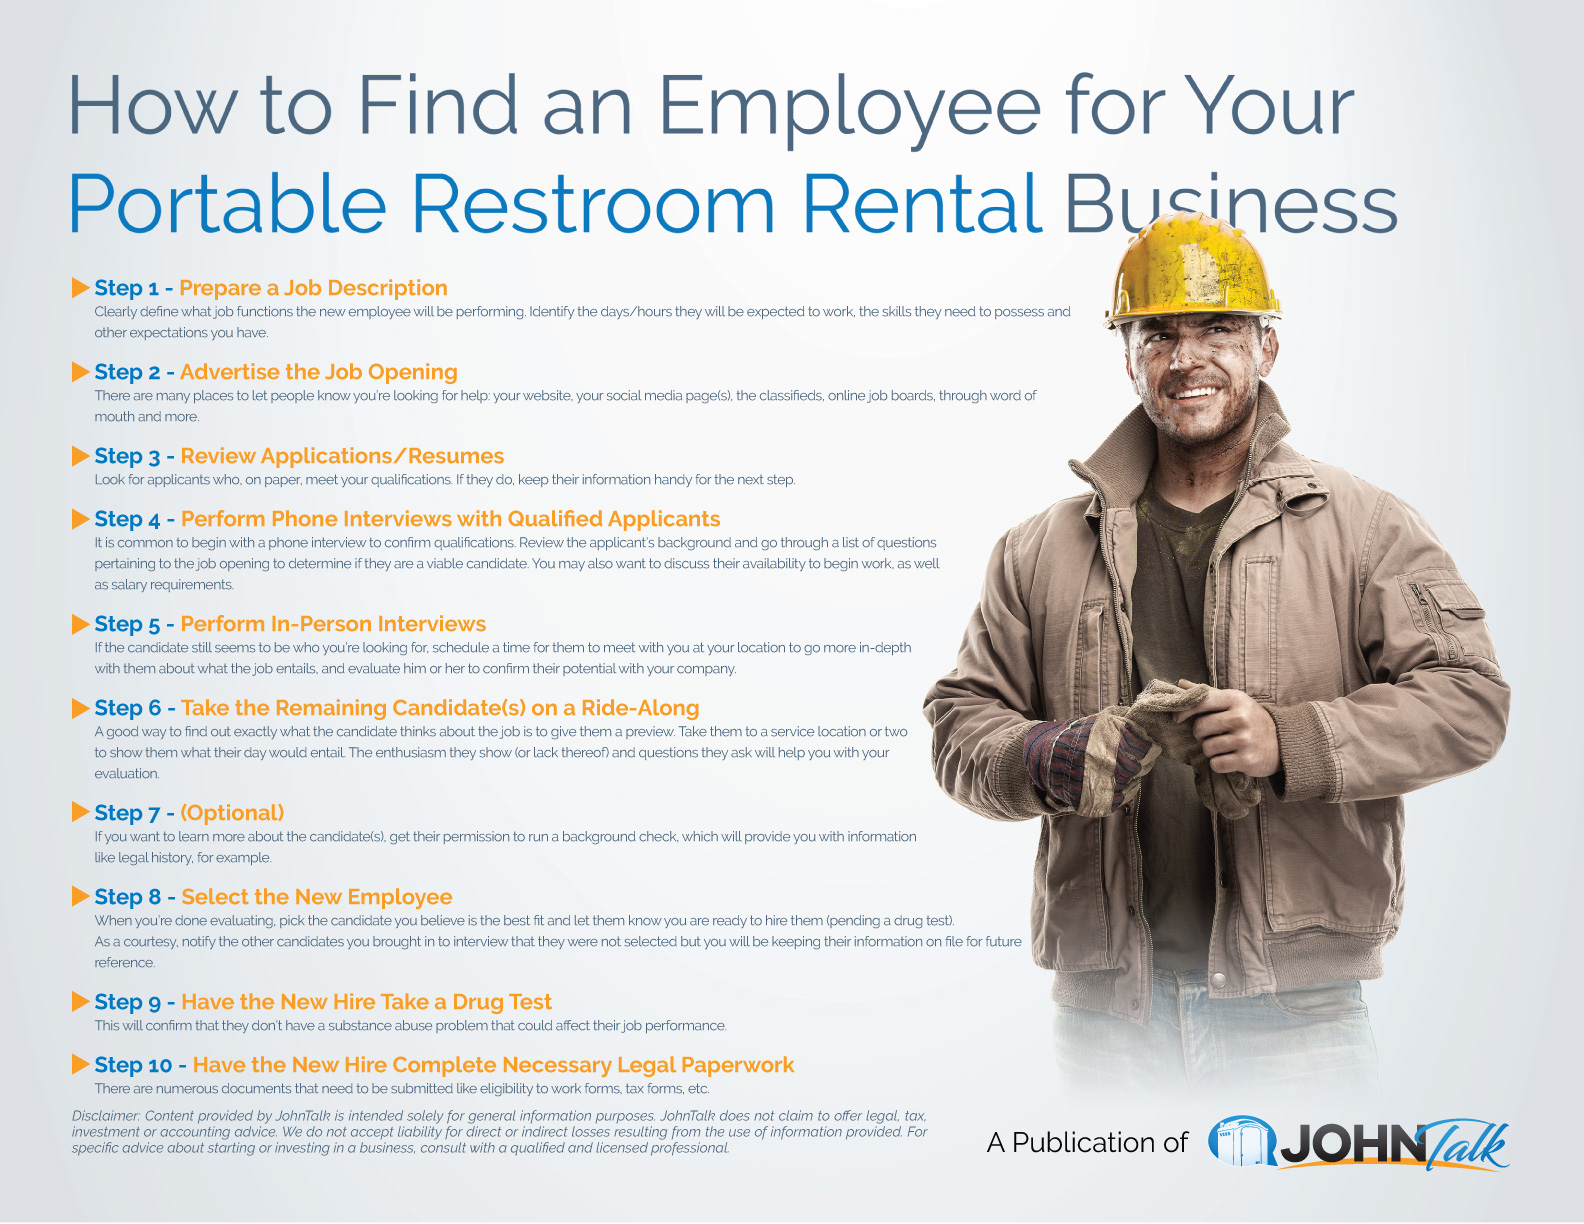 How to Find an Employee for Your Portable Restroom Rental Business